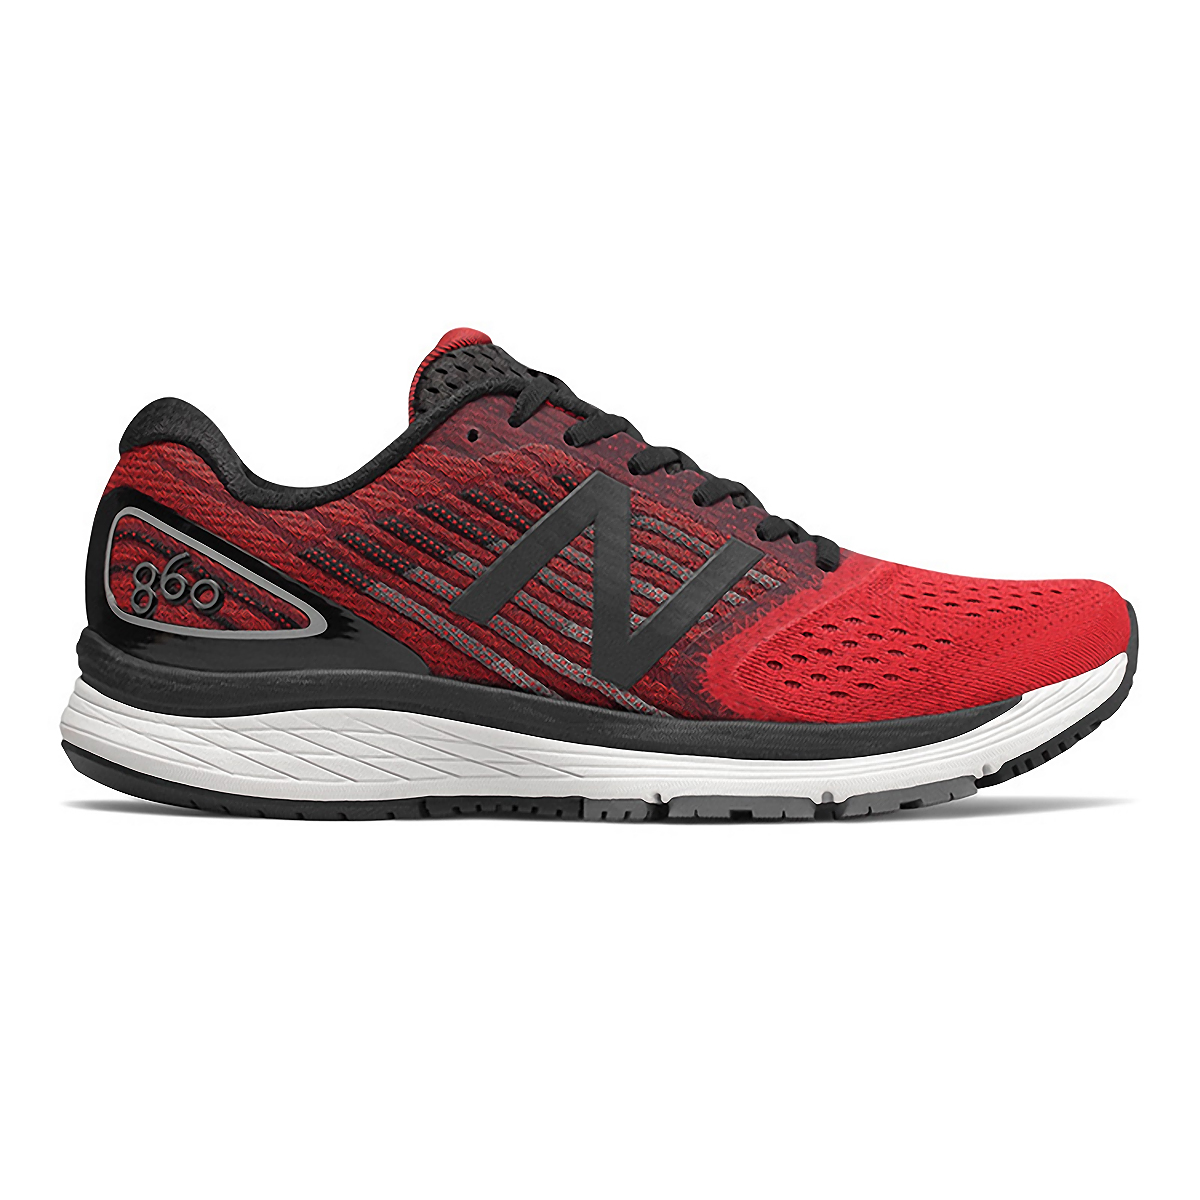 Men's New Balance 860V9 Running Shoe - Color: Team Red - Size: 7 - Width: Wide, Team Red, large, image 1